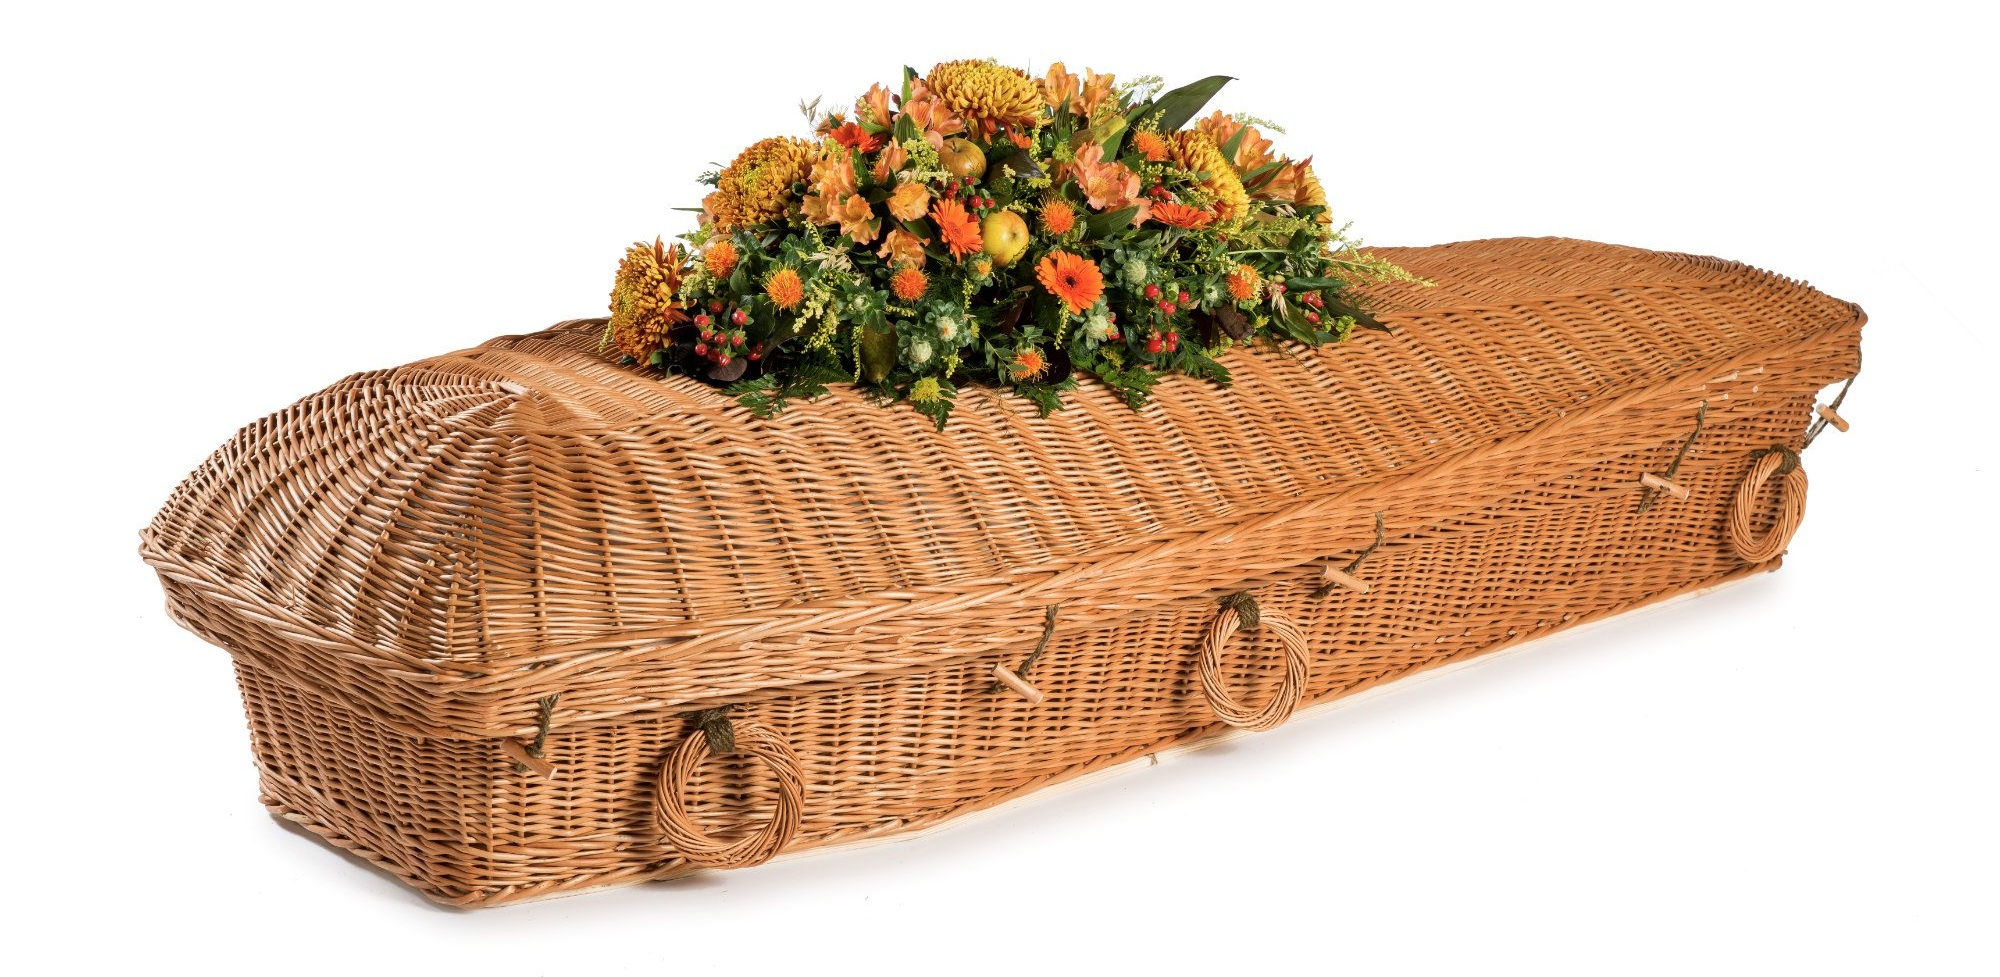 Handmade Willow Pod coffin - Available at  thinkwillow.com